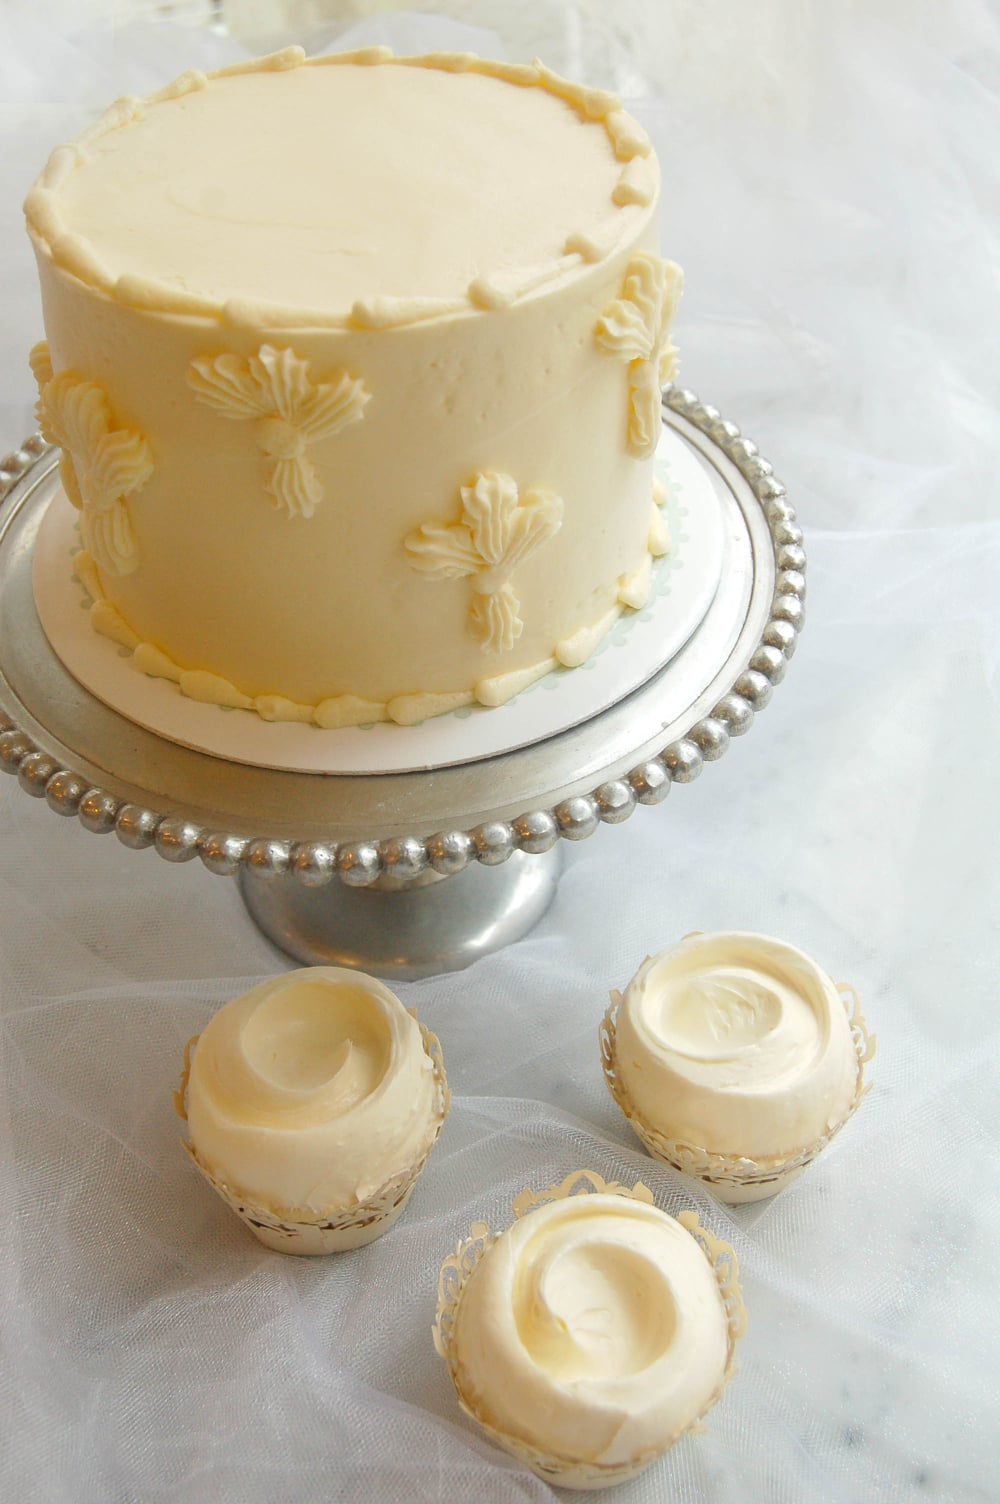 magnolia bakery wedding cake recipe magnolia bakery royal wedding cake popsugar middle east food 16981